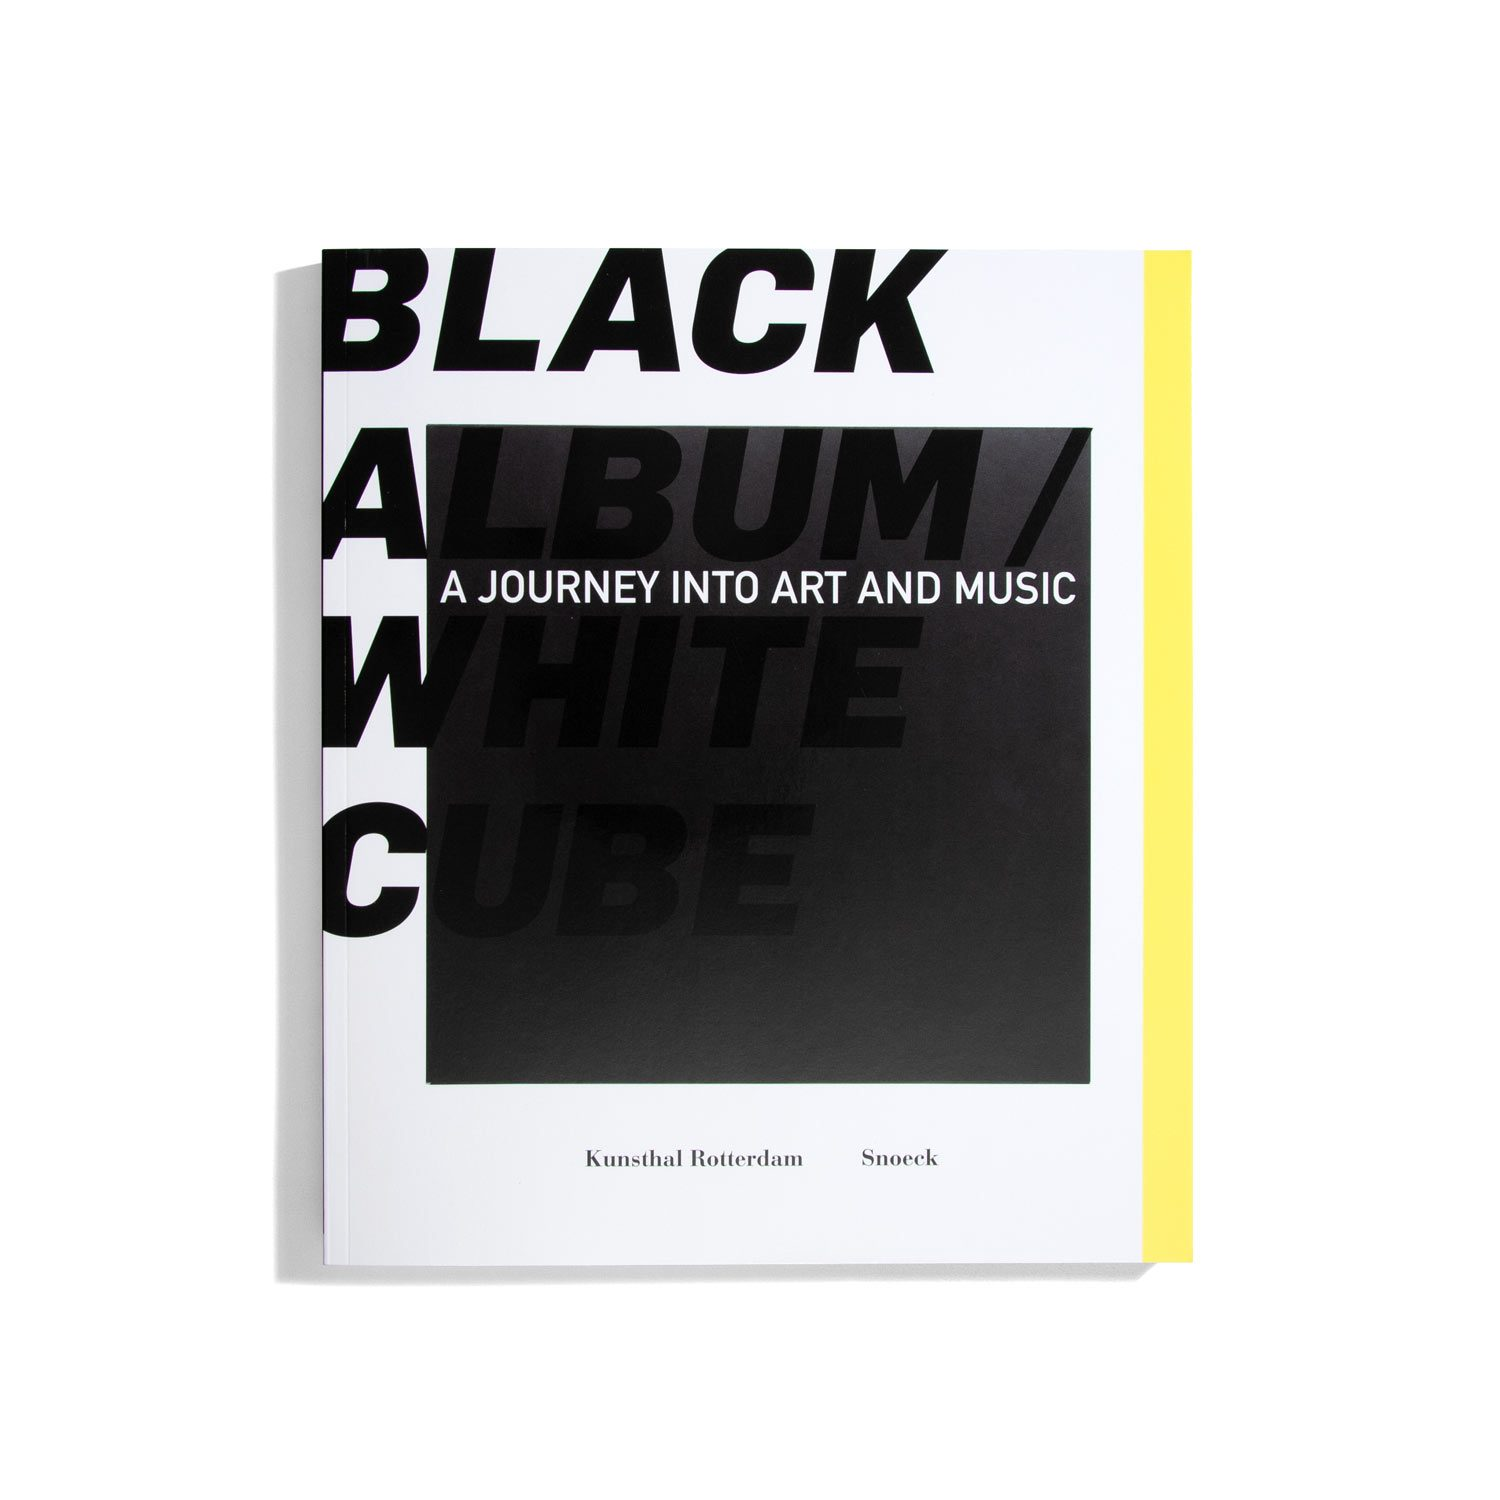 Black Album White Cube - A Journey into Art and Music